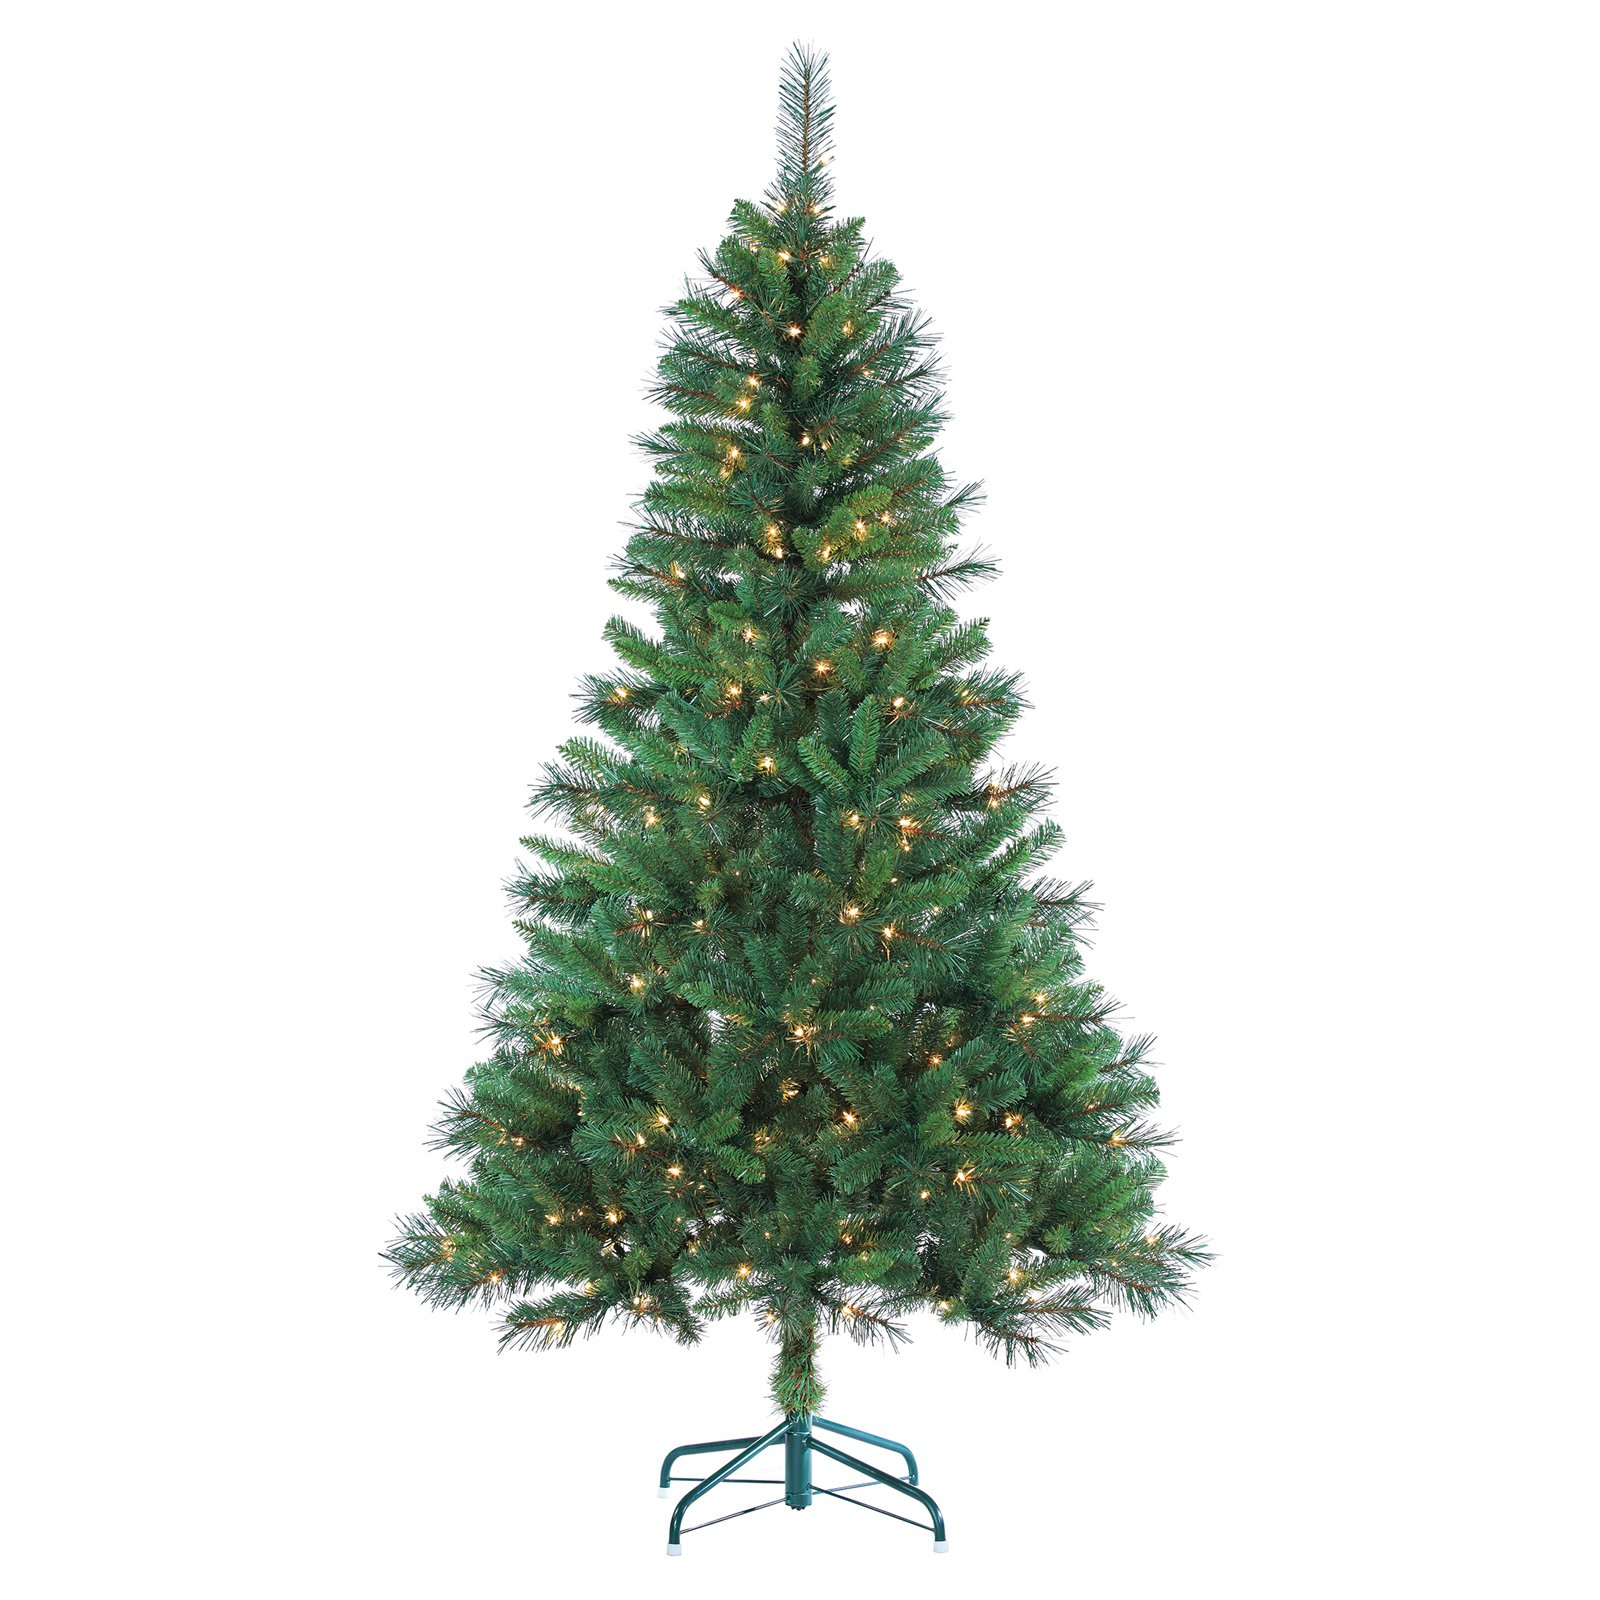 7 ft. Pre-lit LED Emerald Pine Christmas Tree with Bluetooth Multi ...